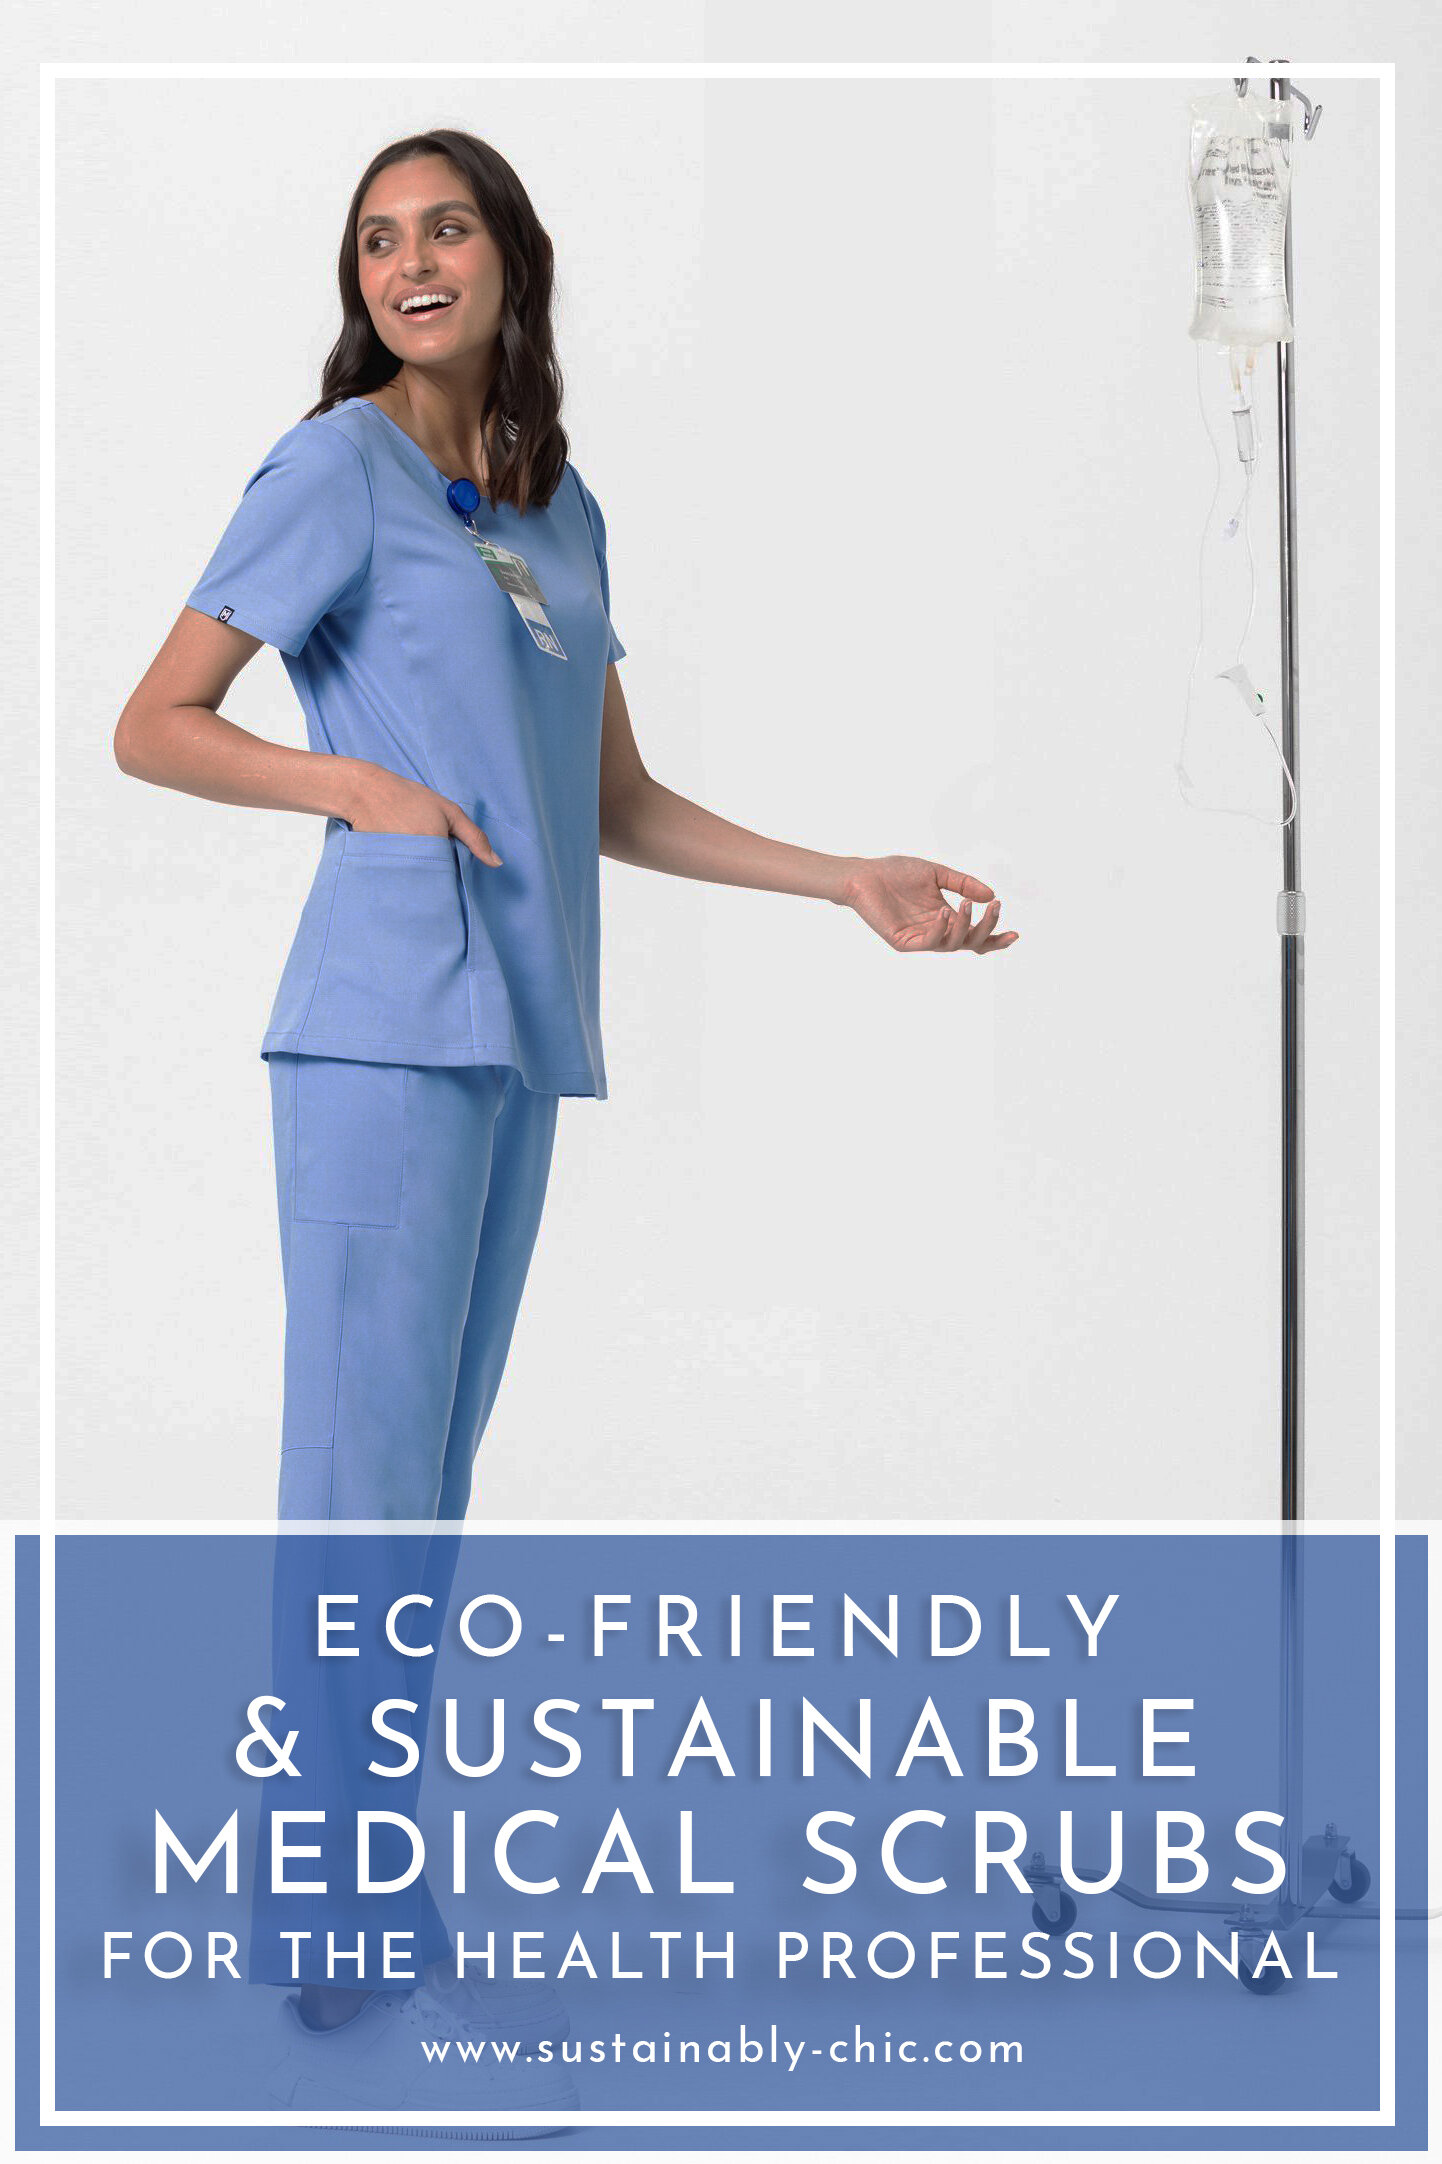 Sustainable-medical-scrubs.jpg